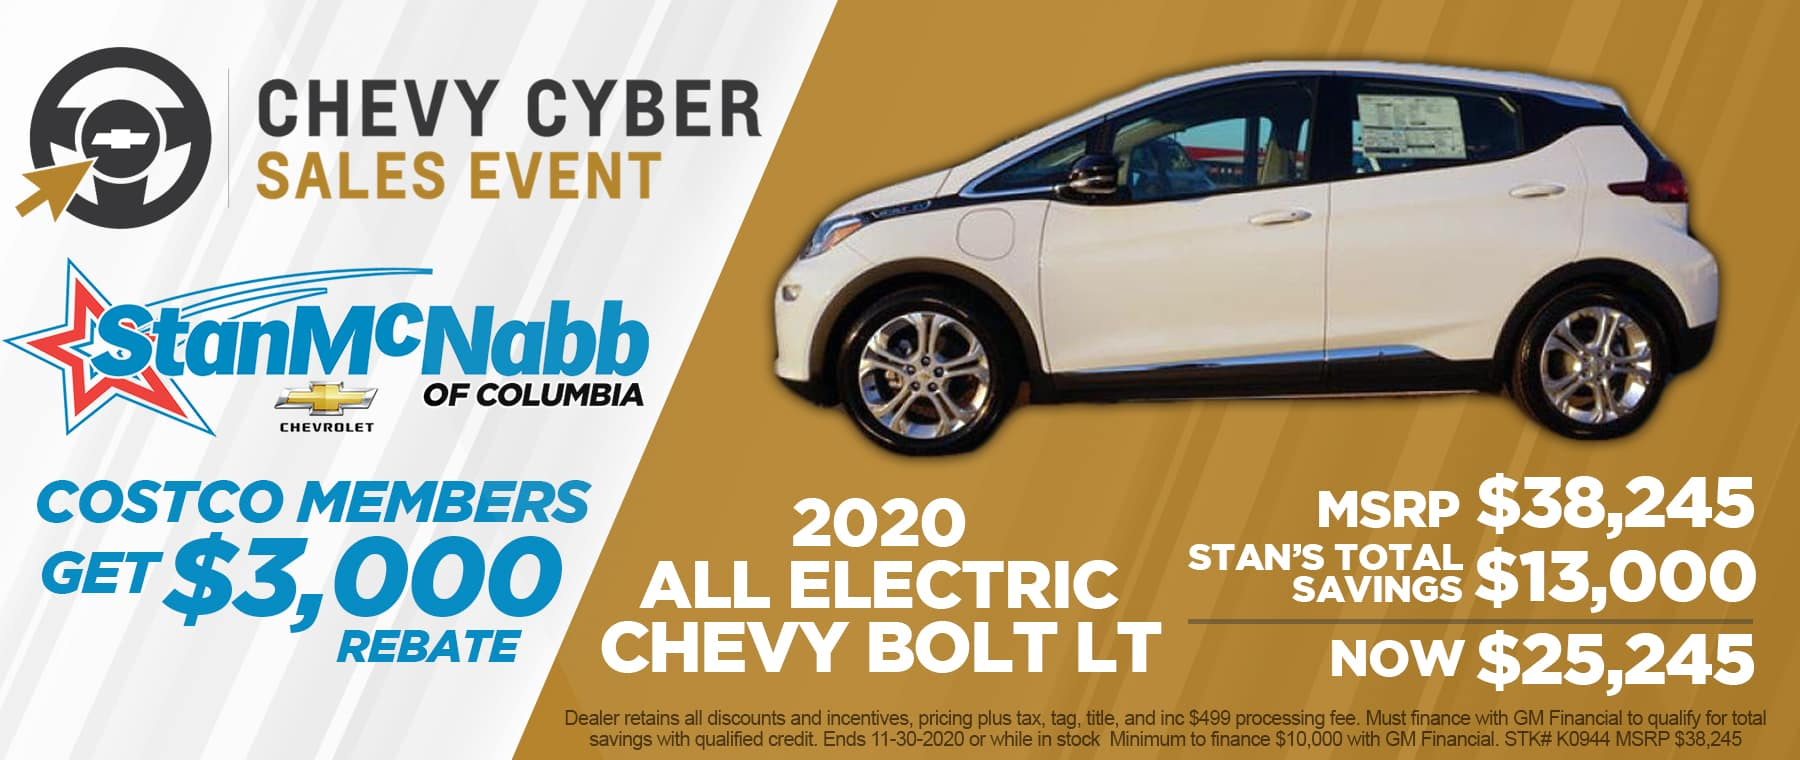 Cyber Sale on the 2020 Chevrolet Bolt